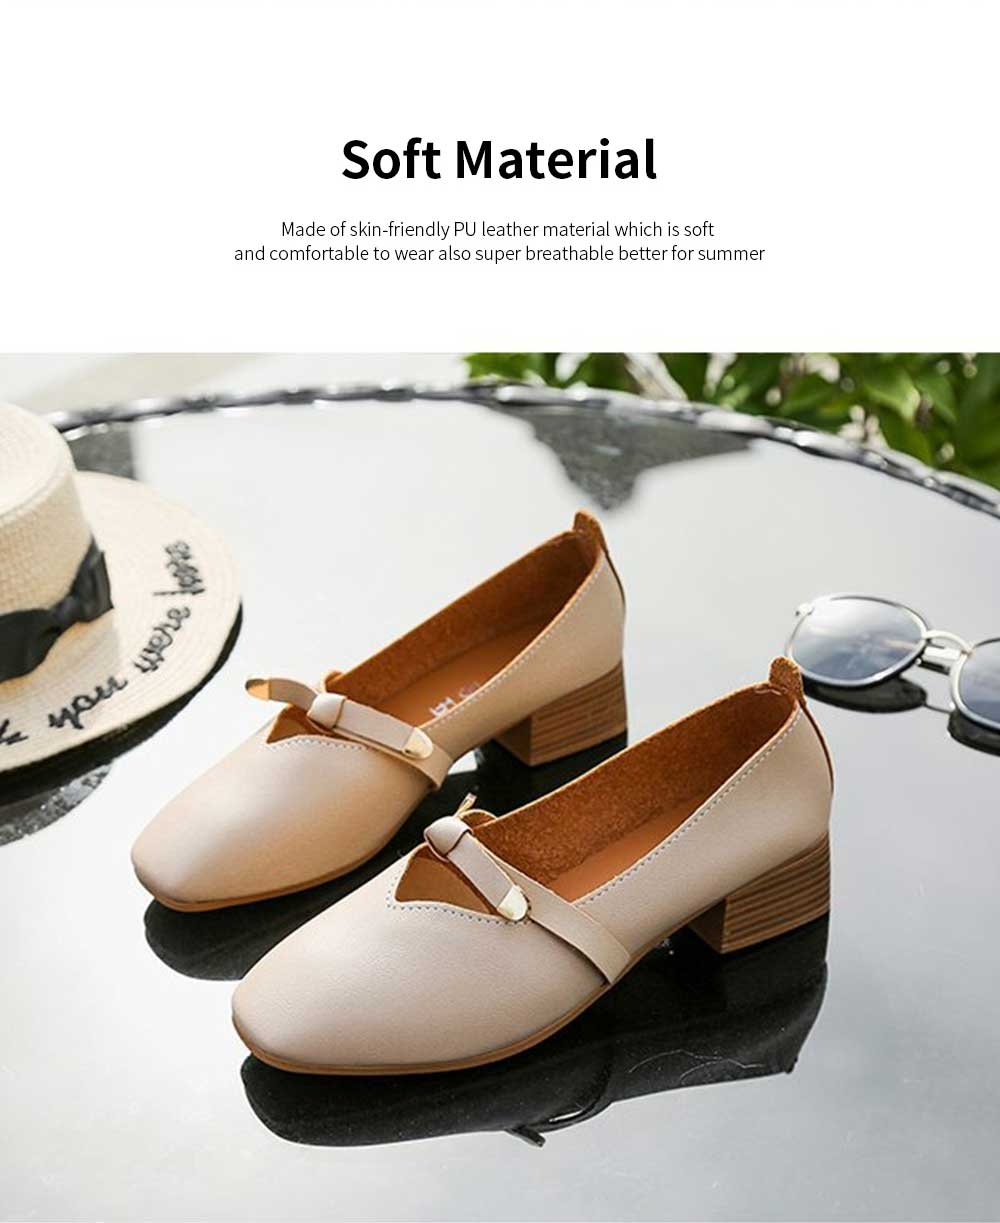 Women's Wide Width Flat Shoes Comfortable Bow Buckle Strap Casual Shoe Mary Jane Square Toe Ballet Flats 3